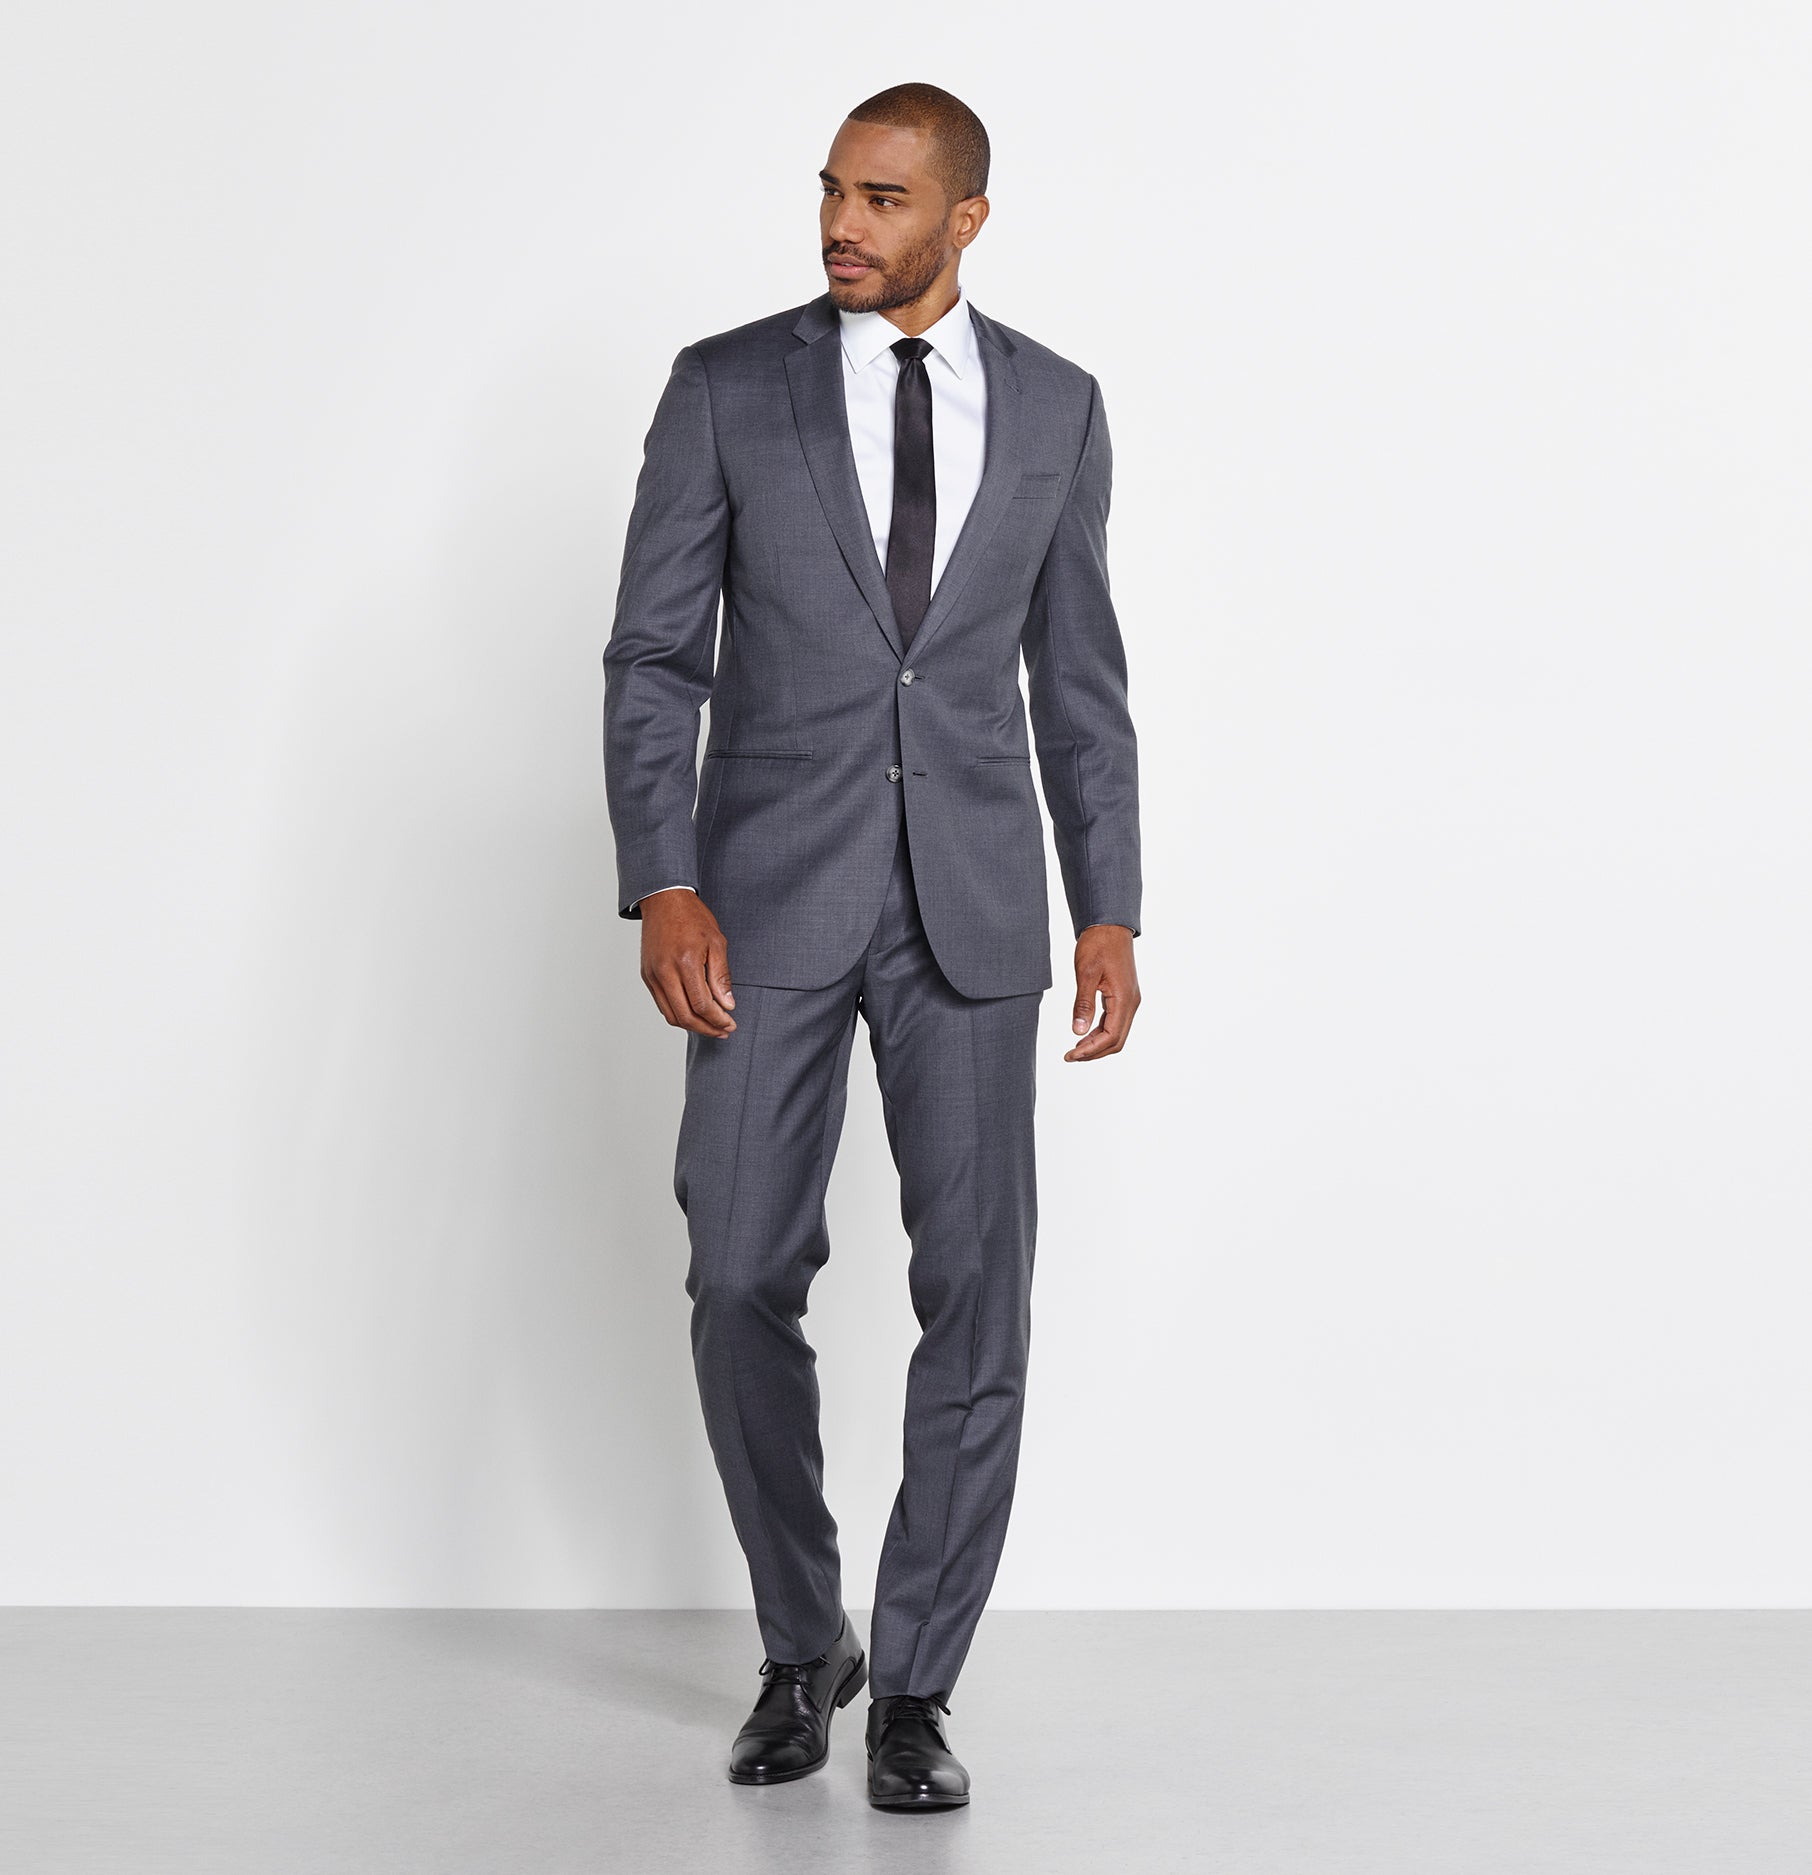 Complete Outfits | The Black Tux